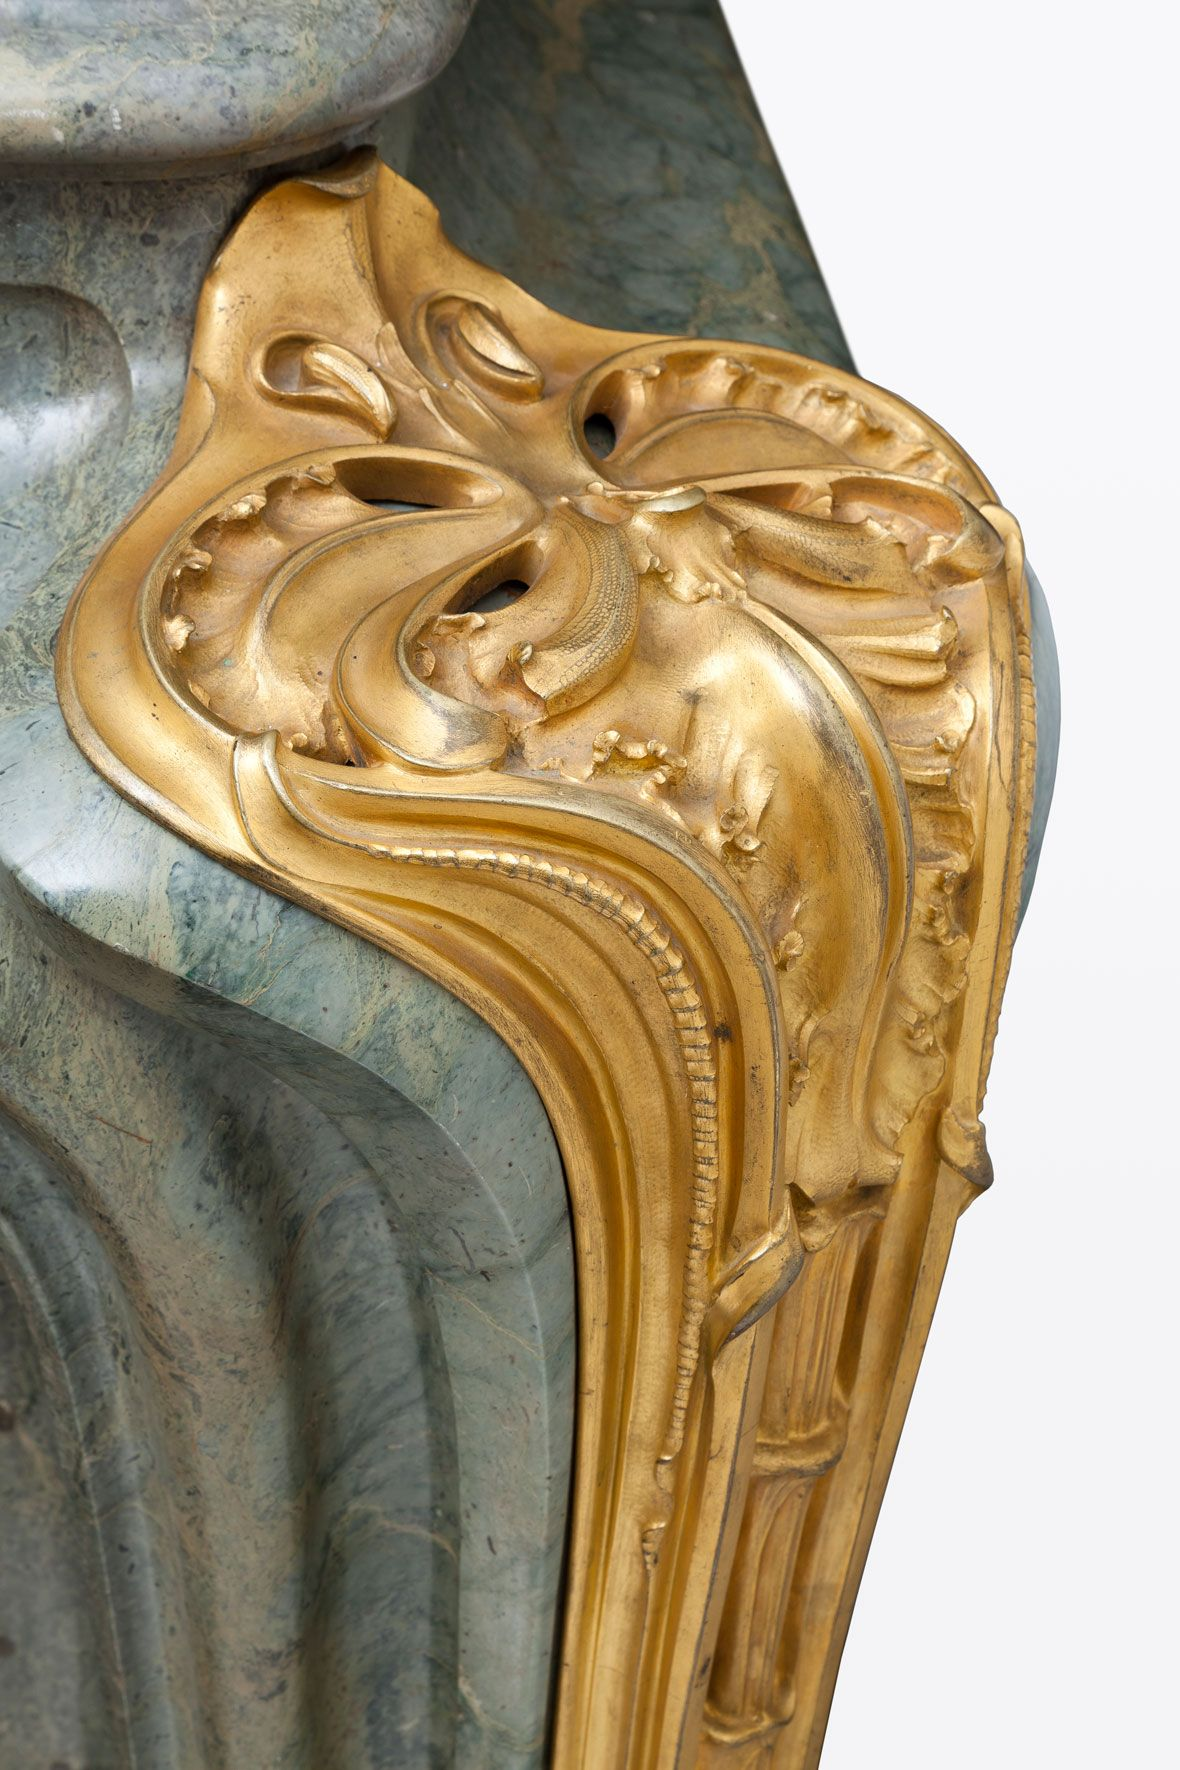 Aux Orchidées, An Impressive Campan Vert Vert Marble and Gilt-Bronze-mounted Fireplace By Louis Majorelle, circa 1906 With hammered metal inner surround and gilt metal sliding plate with handle 47 ¾ in (121.3 cm) high, 63 ¾ in (162 cm) wide, 22 in (56 cm) deep Literature Alastair Duncan, Louis Majorelle: Master of Art Nouveau Design, 1991, p.88